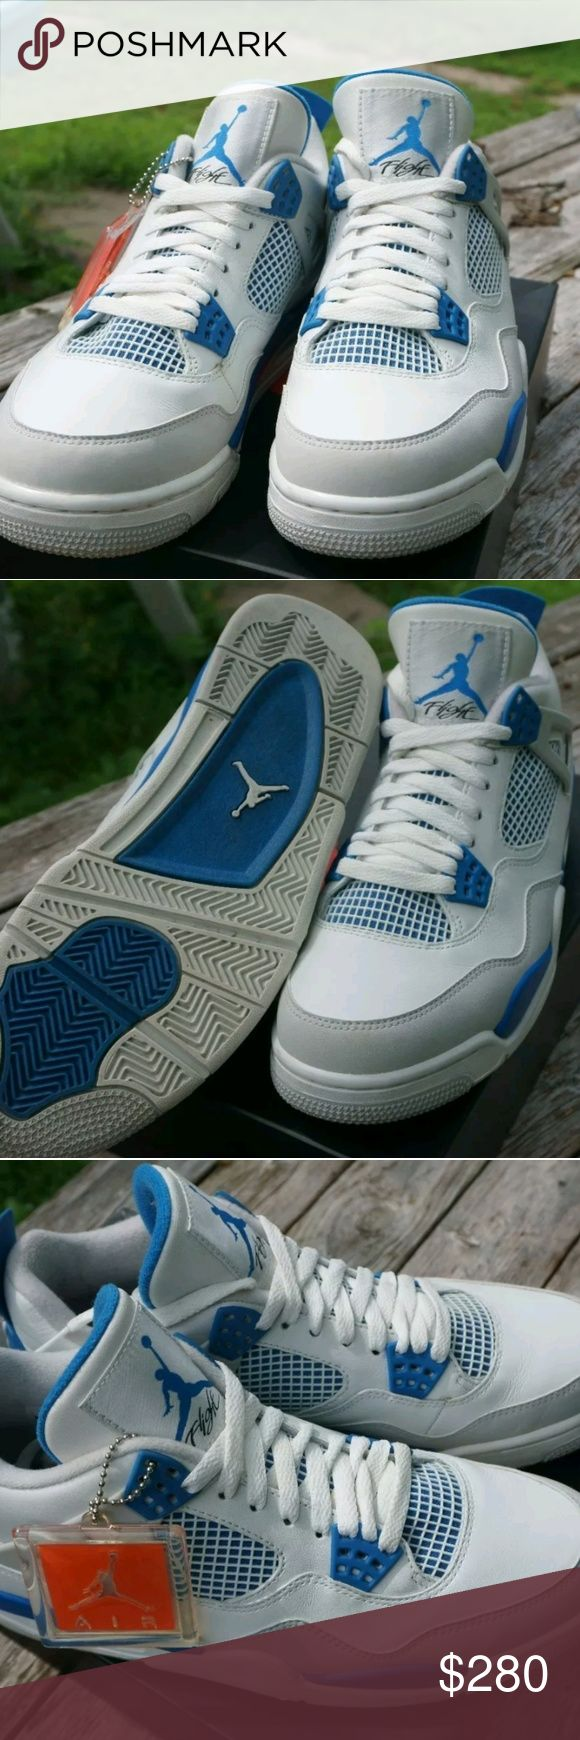 Air Jordan Retro 4 Military Blue VNDS + FREE SHIRT VNDS military 4s comes with matching custom tee Jordan Shoes Sneakers